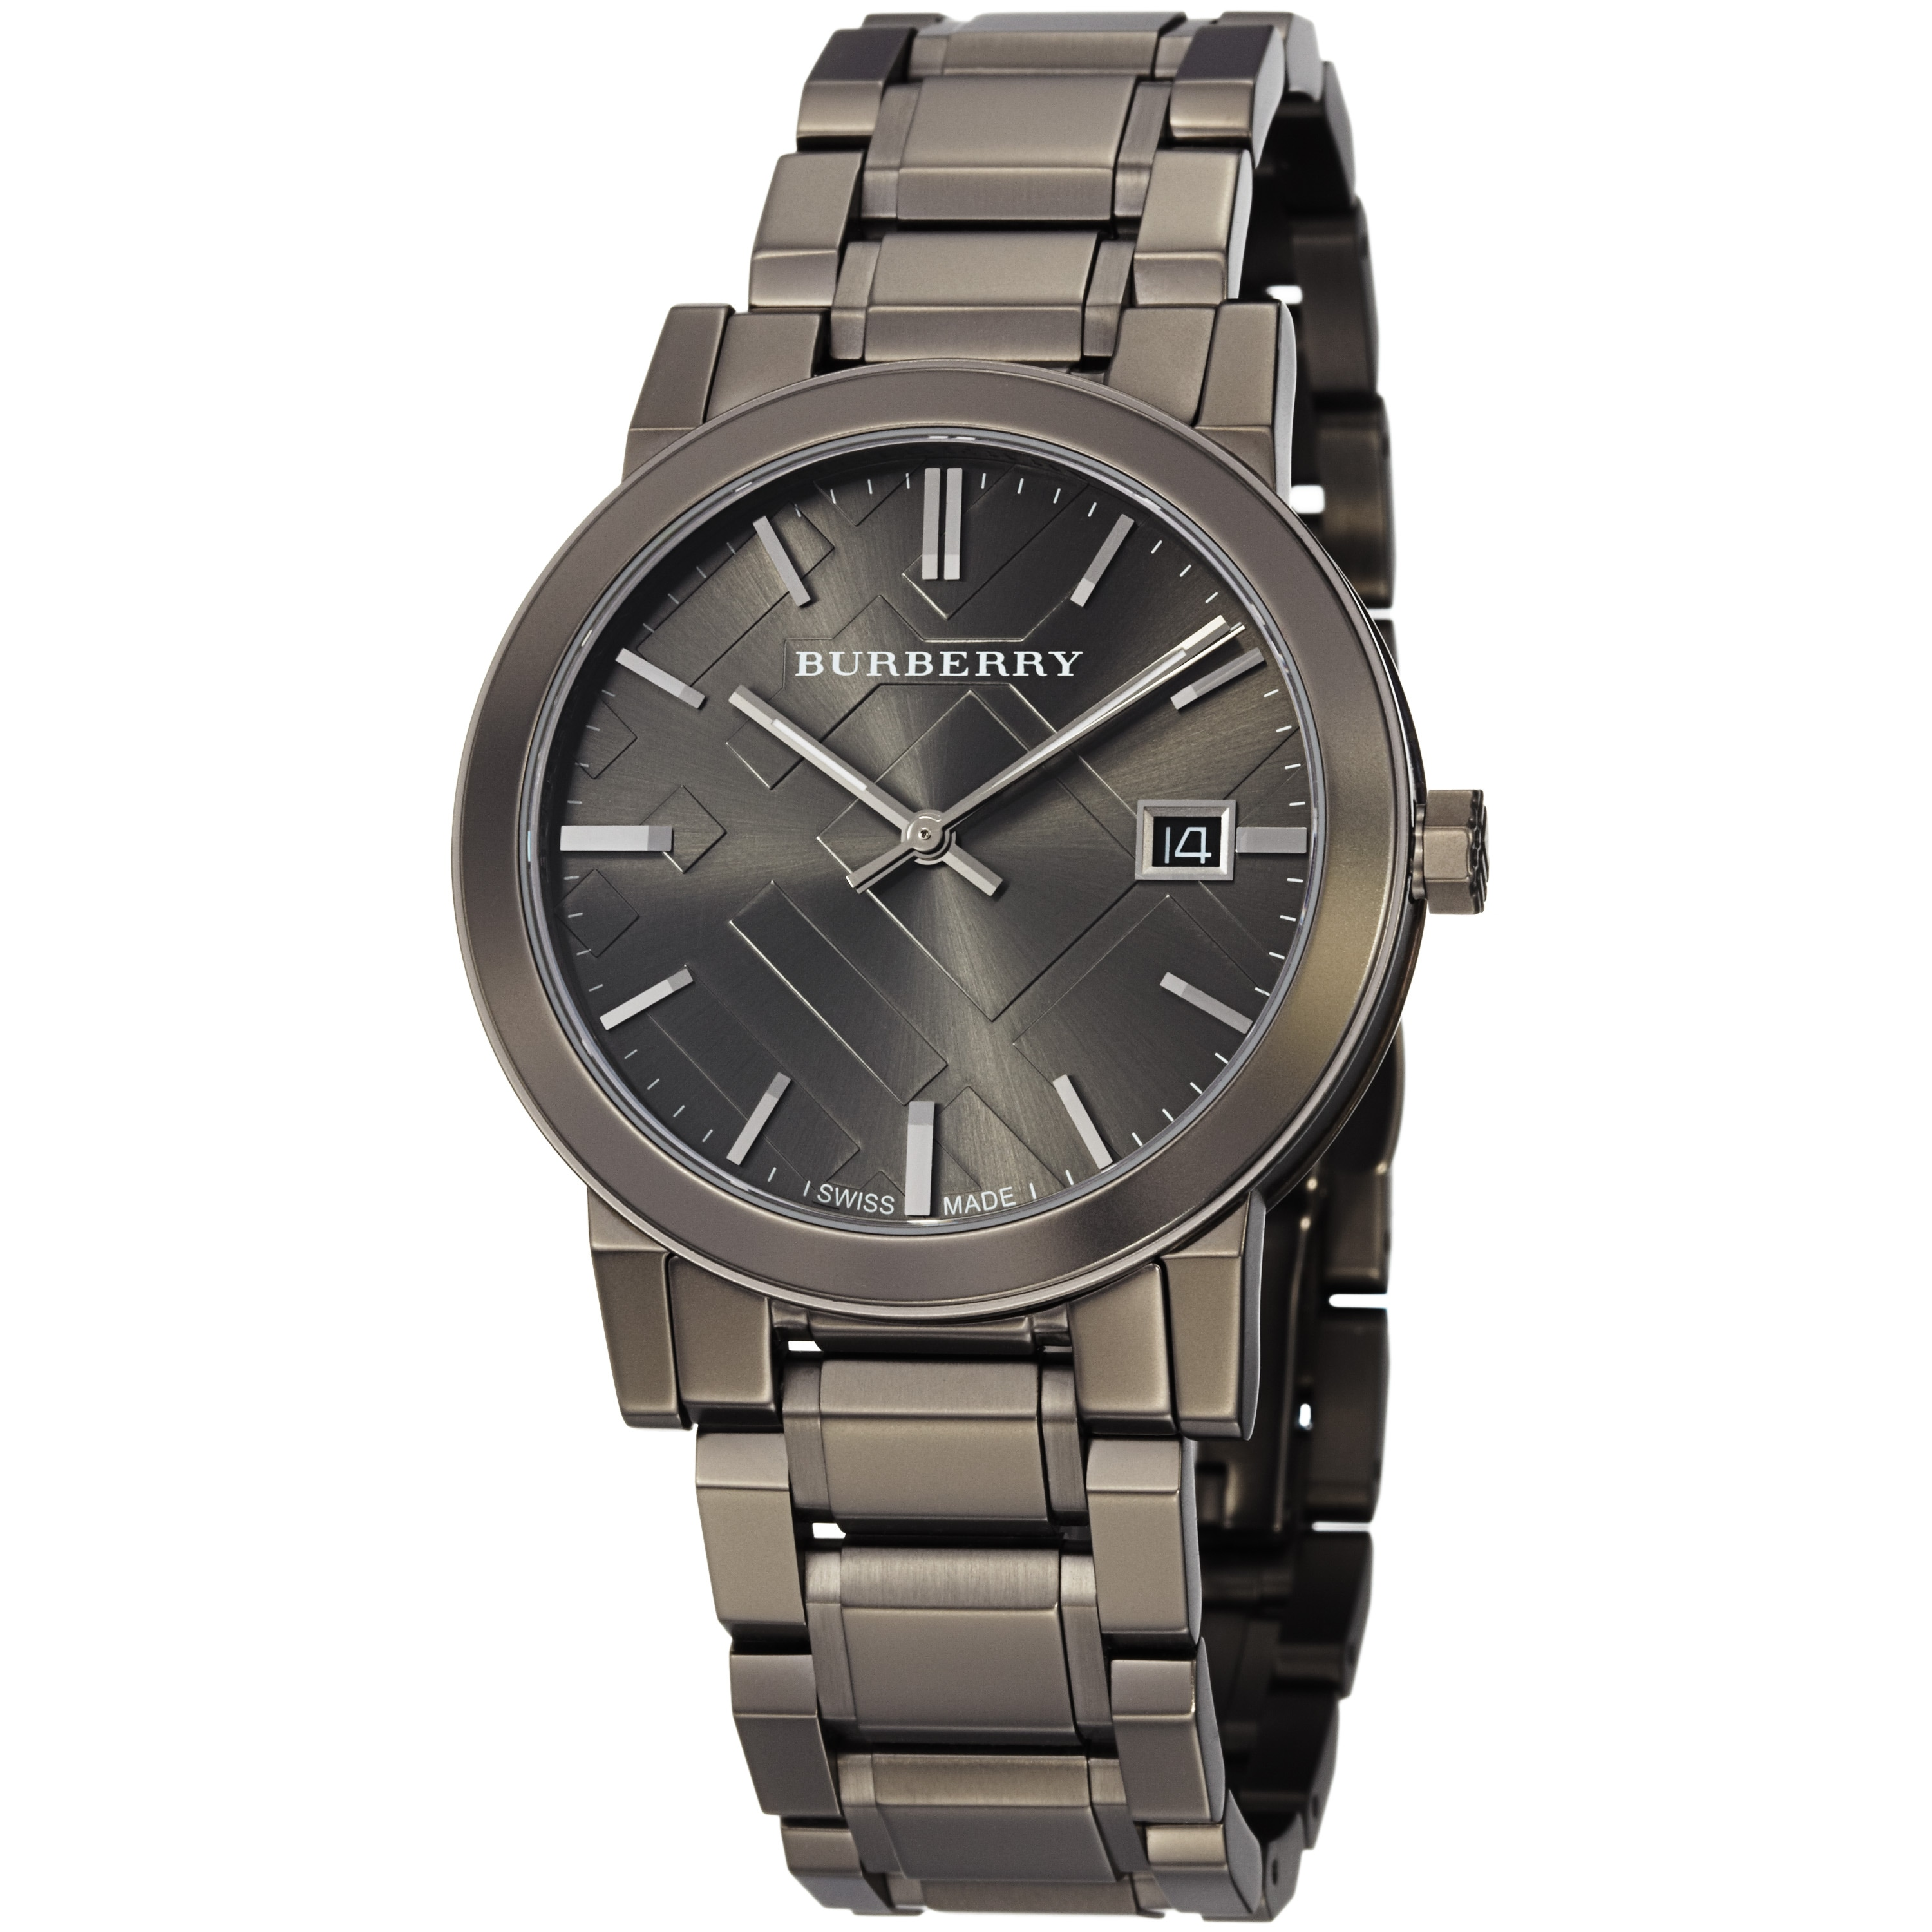 Burberry men 39 s 39 large check 39 gunmetal stainless steeel quartz watch 14340020 for Burberry watches